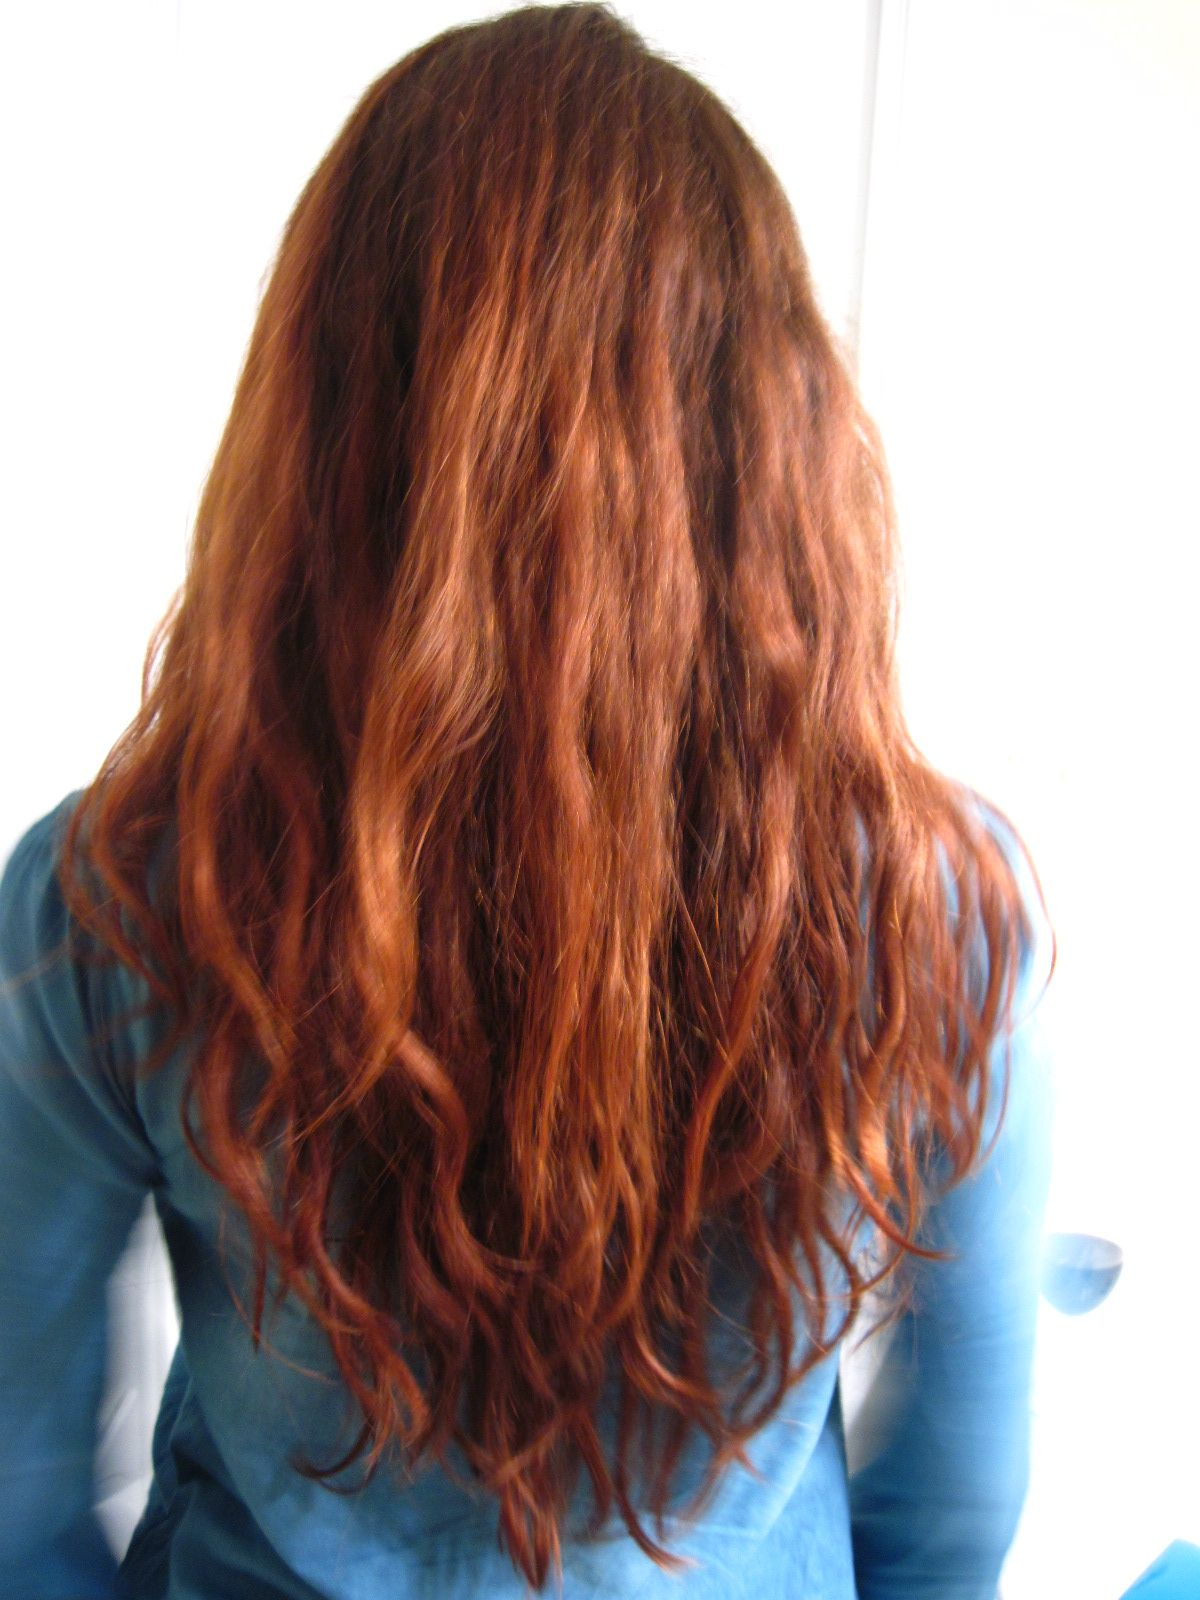 Danielle's hair after coloring with Light Mountain ...